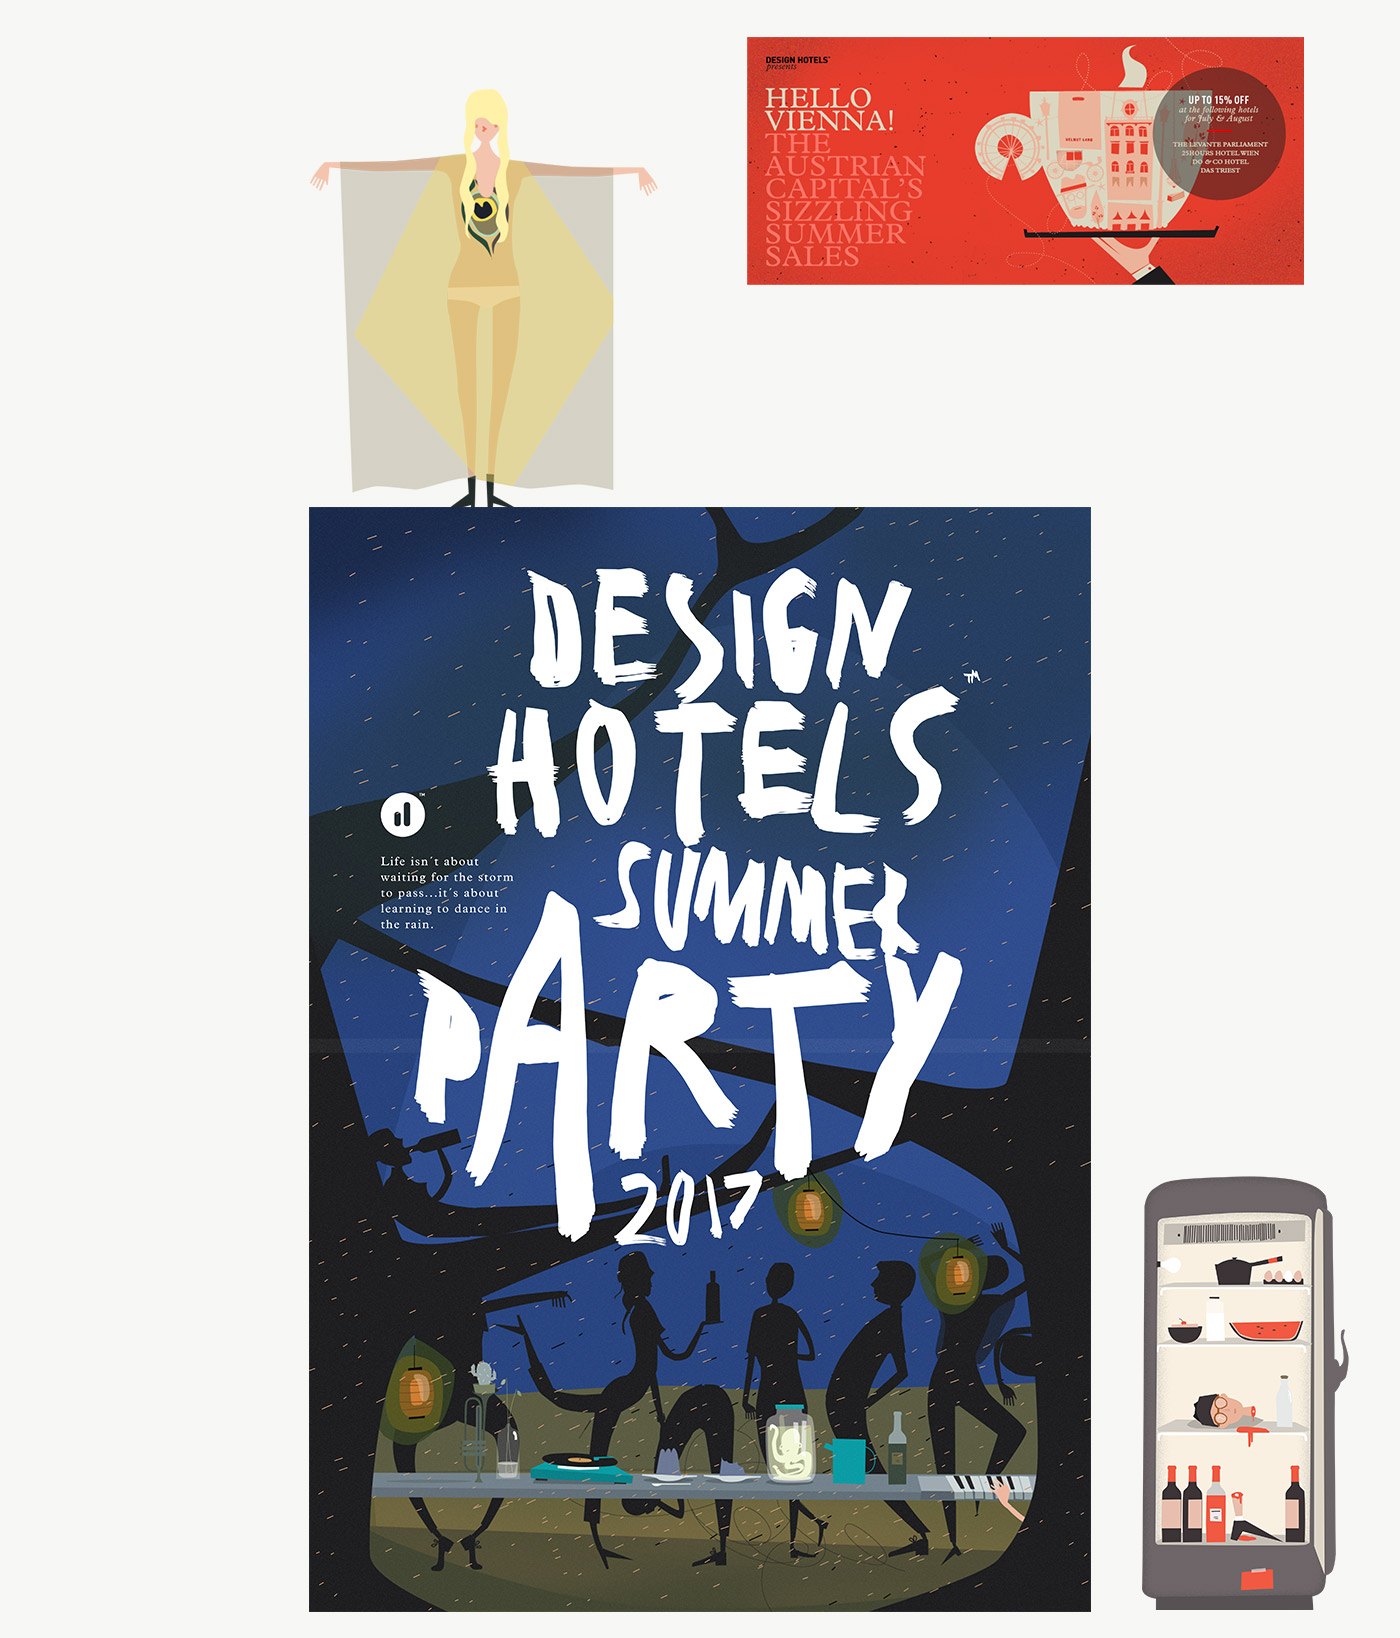 designhotels-community-illus-part7